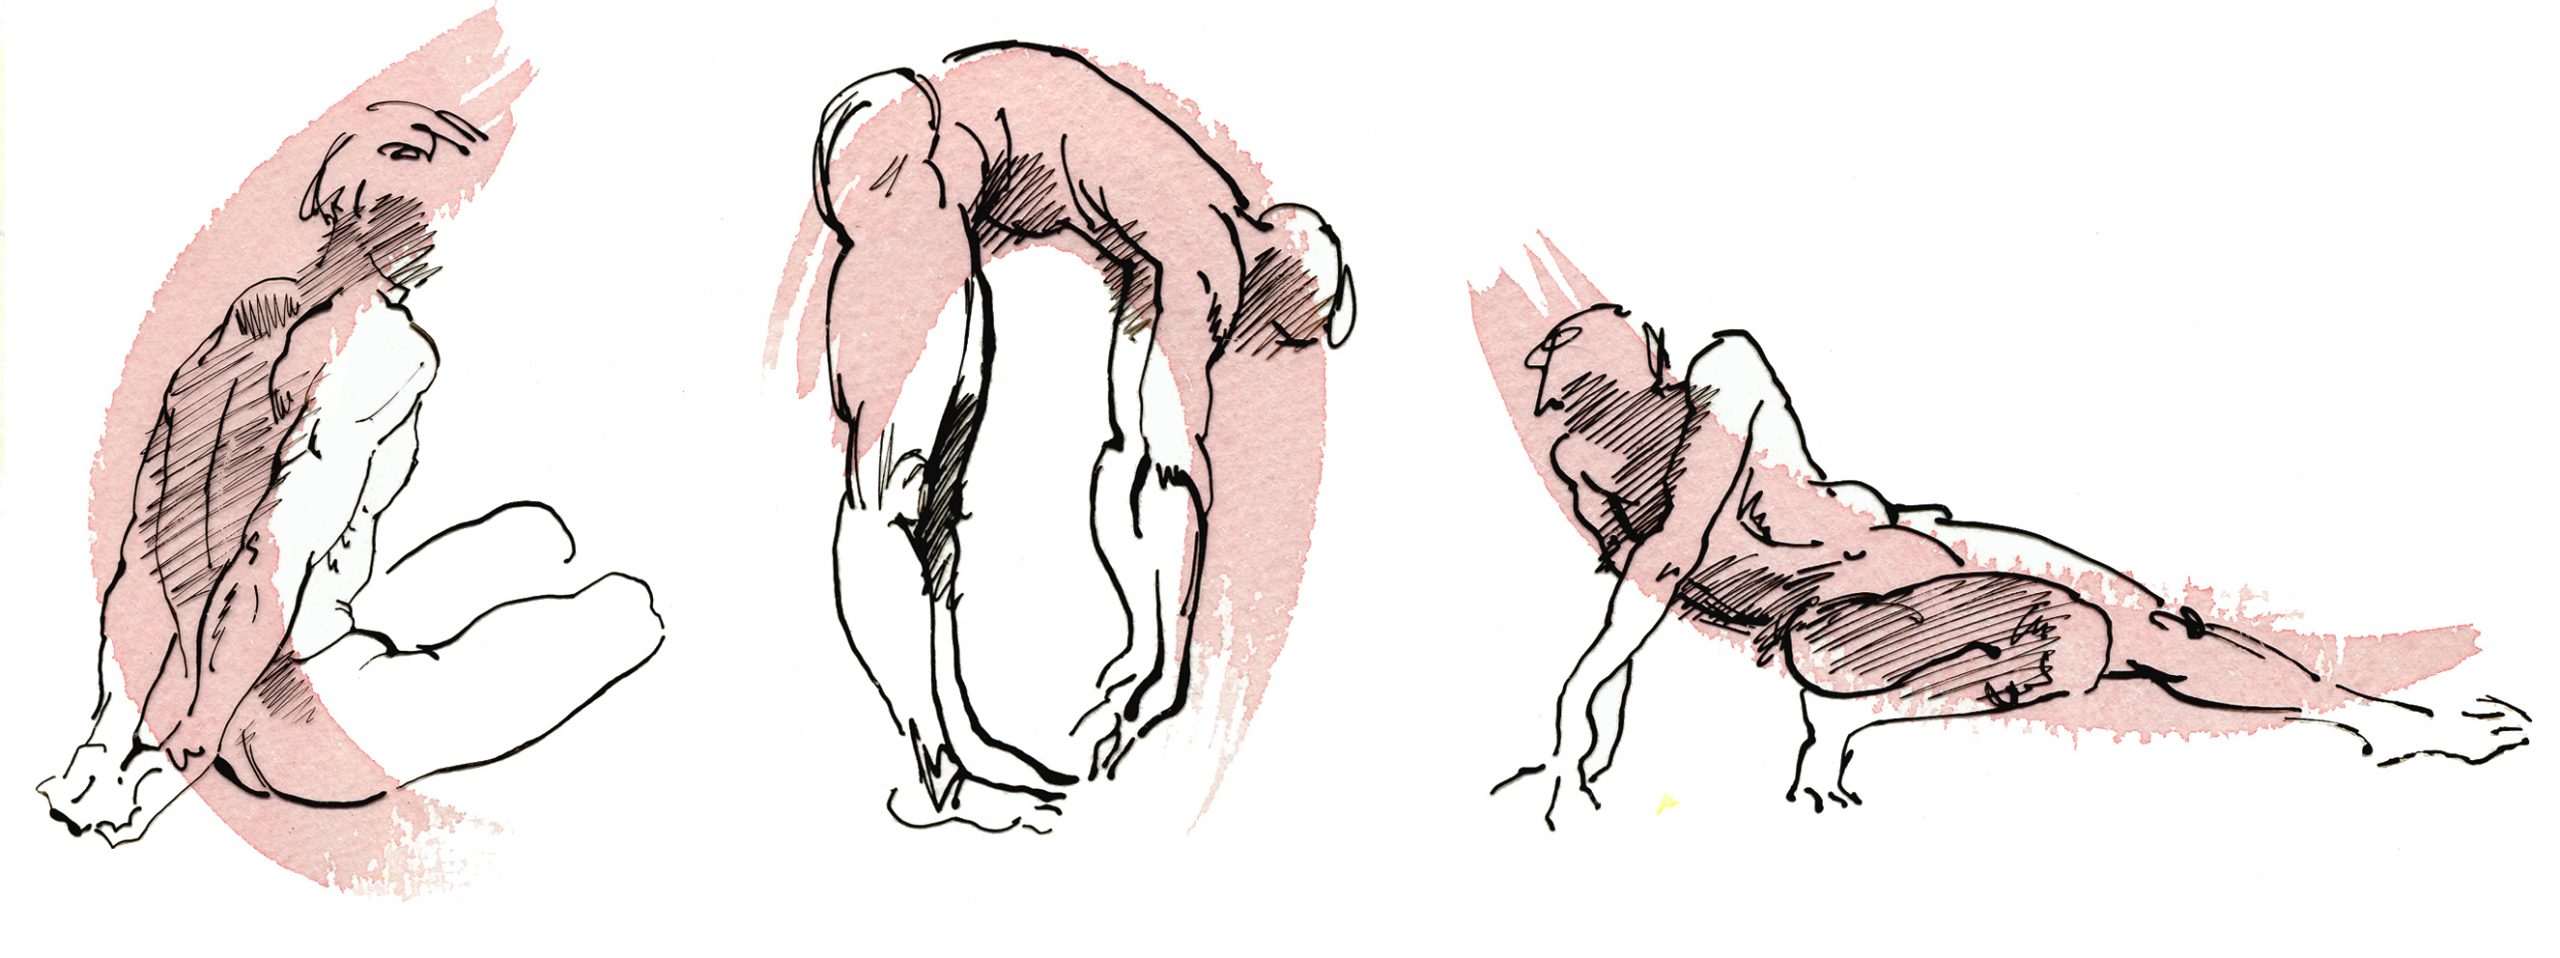 Illustraion Figurative Male Fitness Excercise Toned Traditional Active